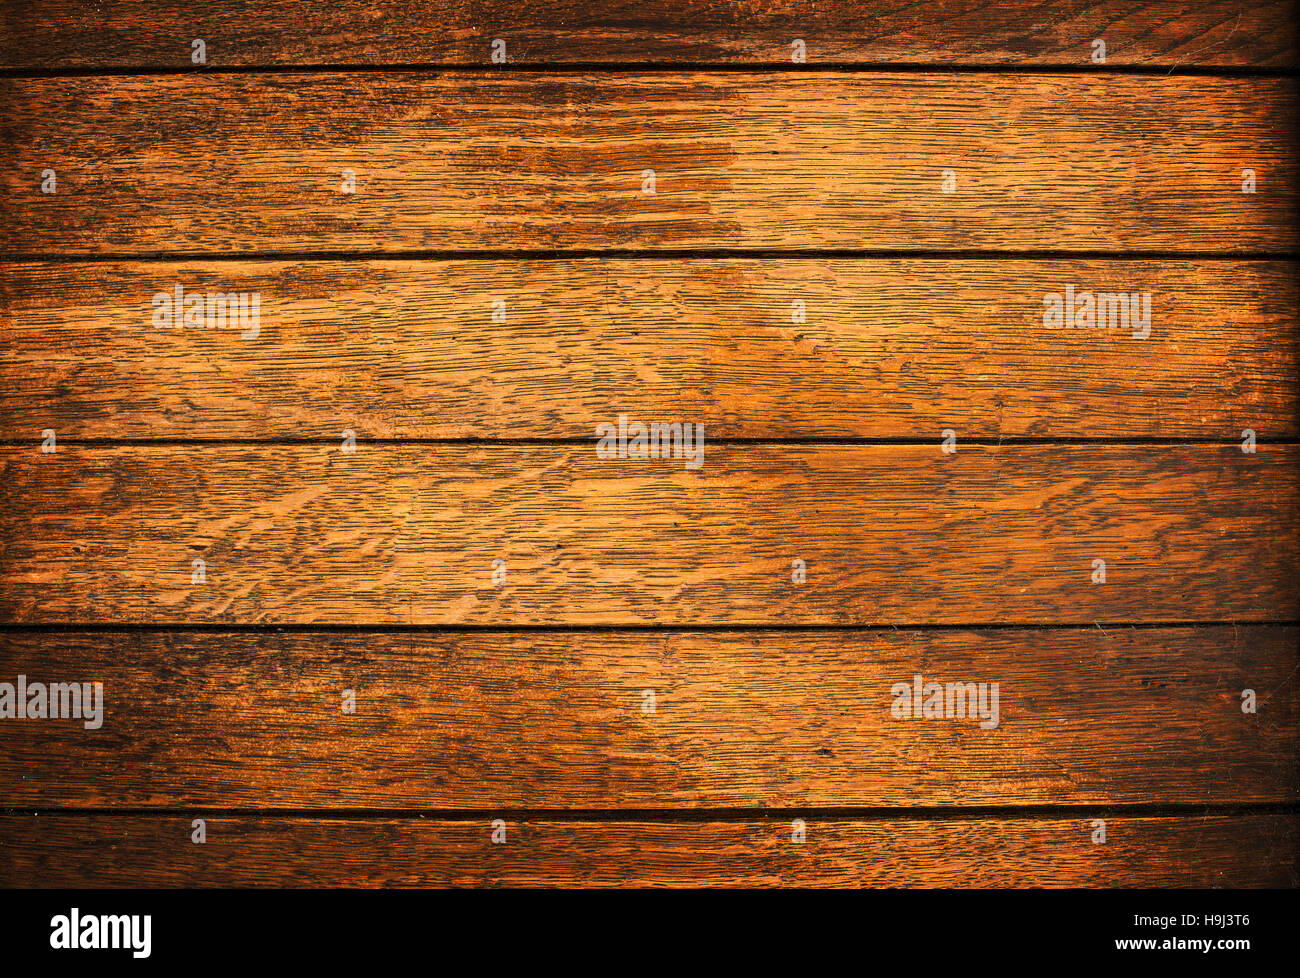 Wood plank brown texture background close up - Stock Image